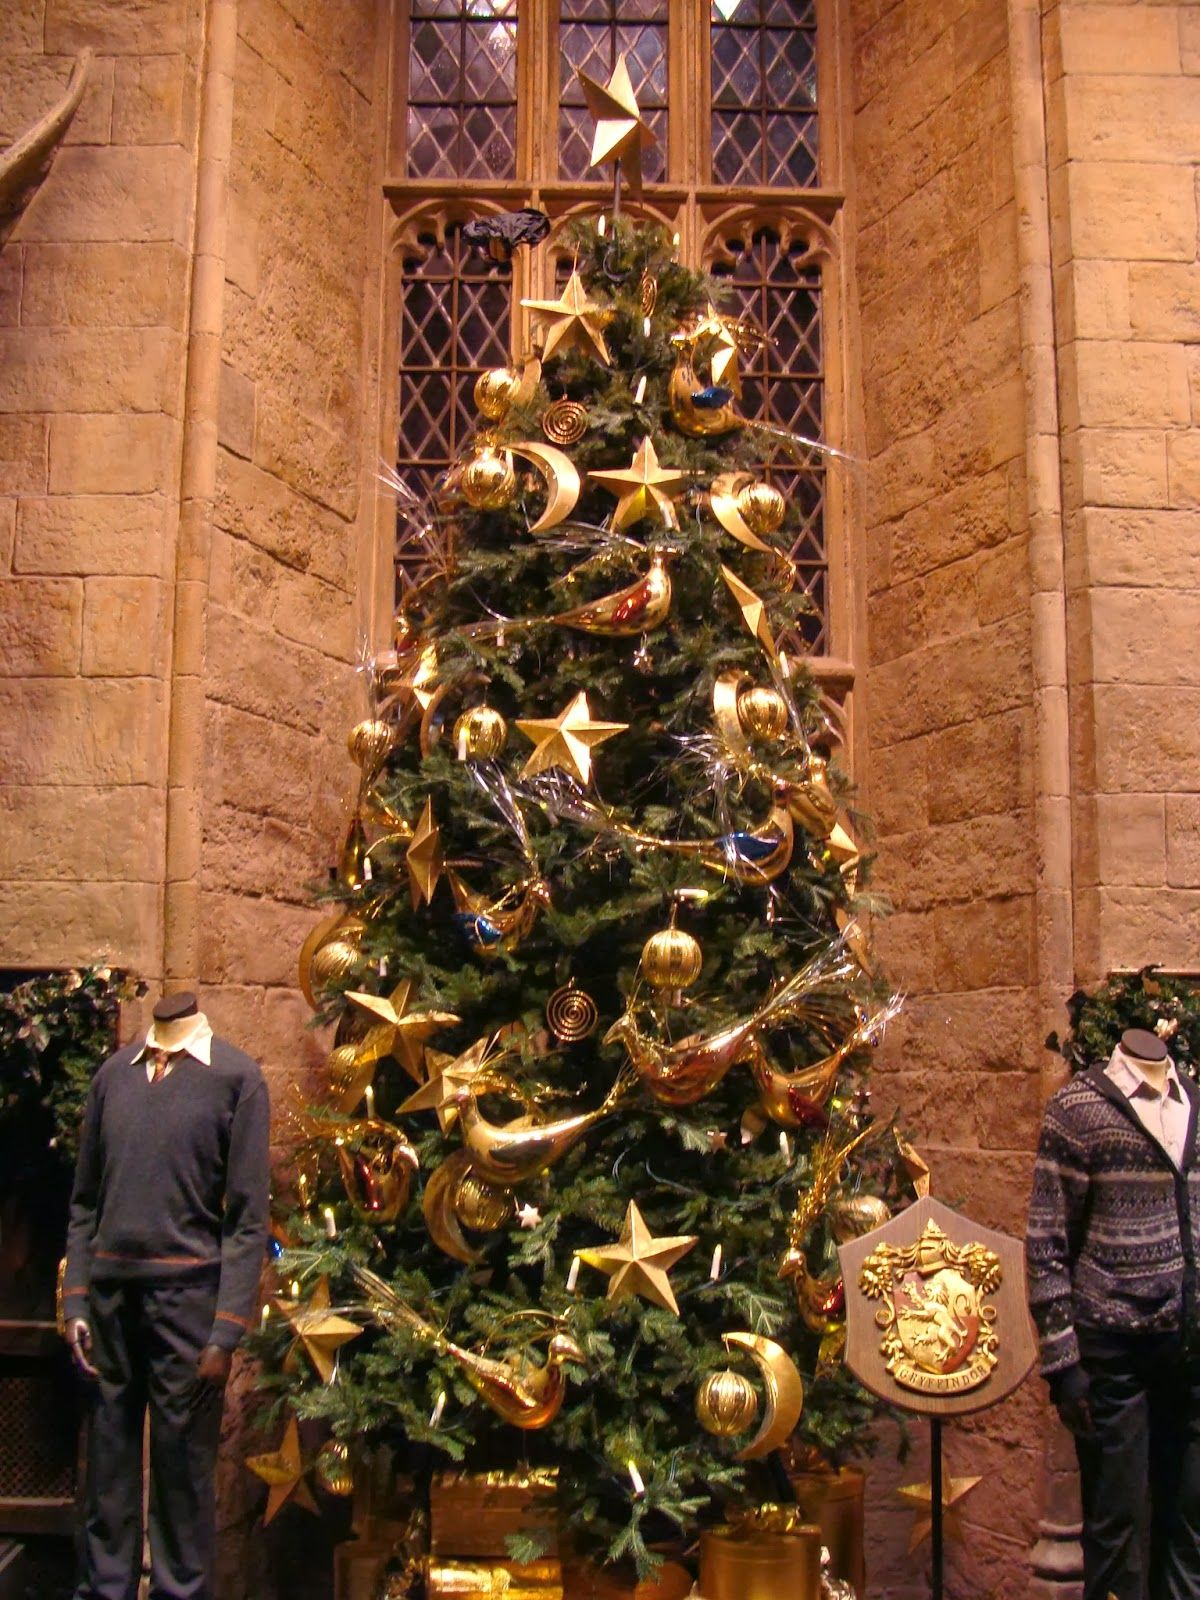 Hogwarts Christmas Wallpaper X3Cbx3Ewallpapers Hogwarts Christmasx3Cbx3E Tree